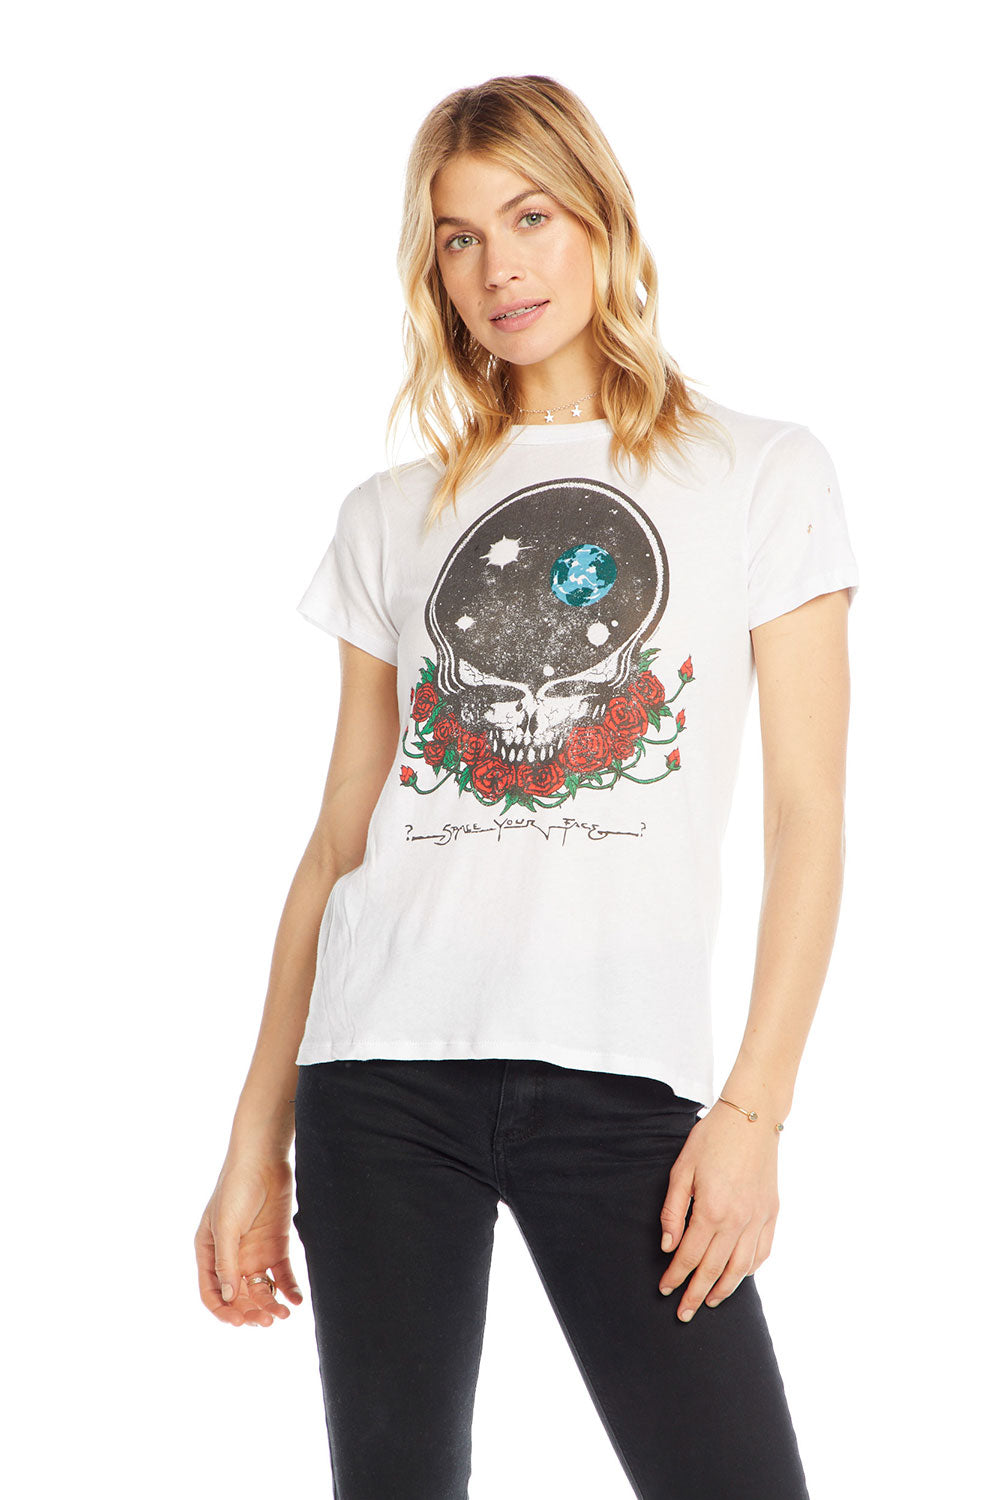 Grateful Dead - Space Your Face WOMENS chaserbrand4.myshopify.com